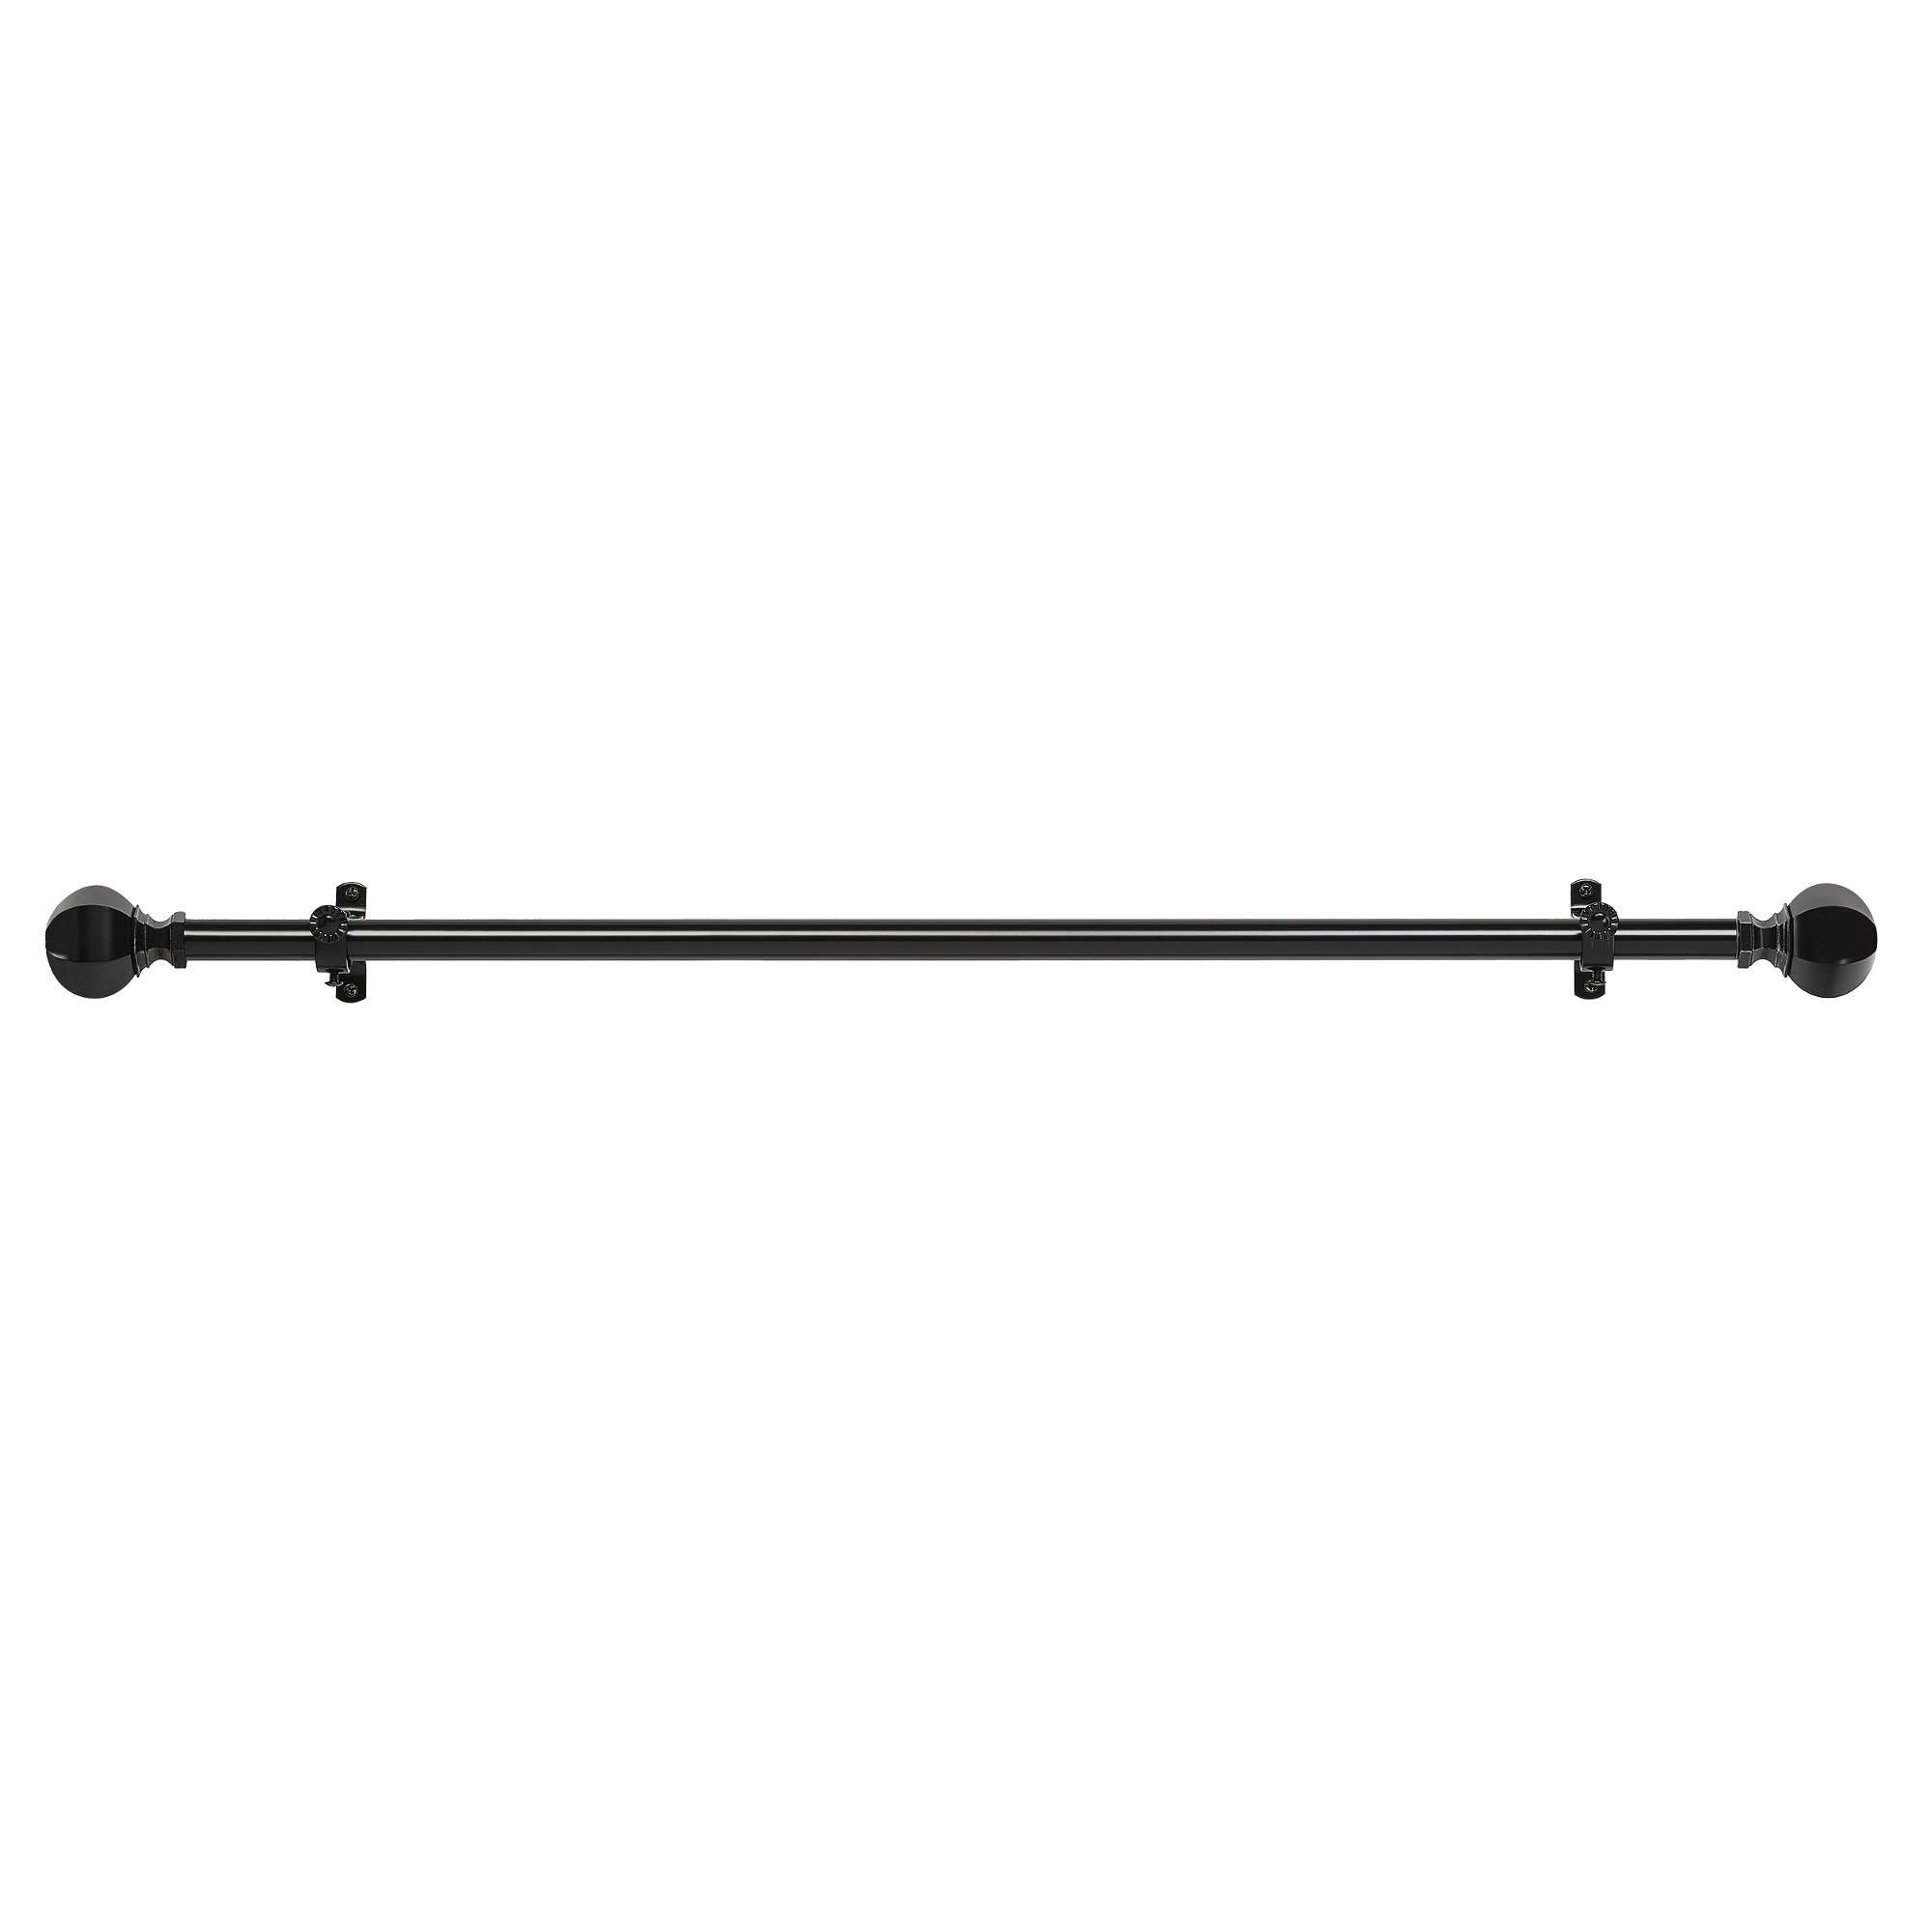 Achim Home Furnishings Buono II Decorative Rod and Finial, 66'' up to 120'', Regent by Achim Home Furnishings (Image #2)